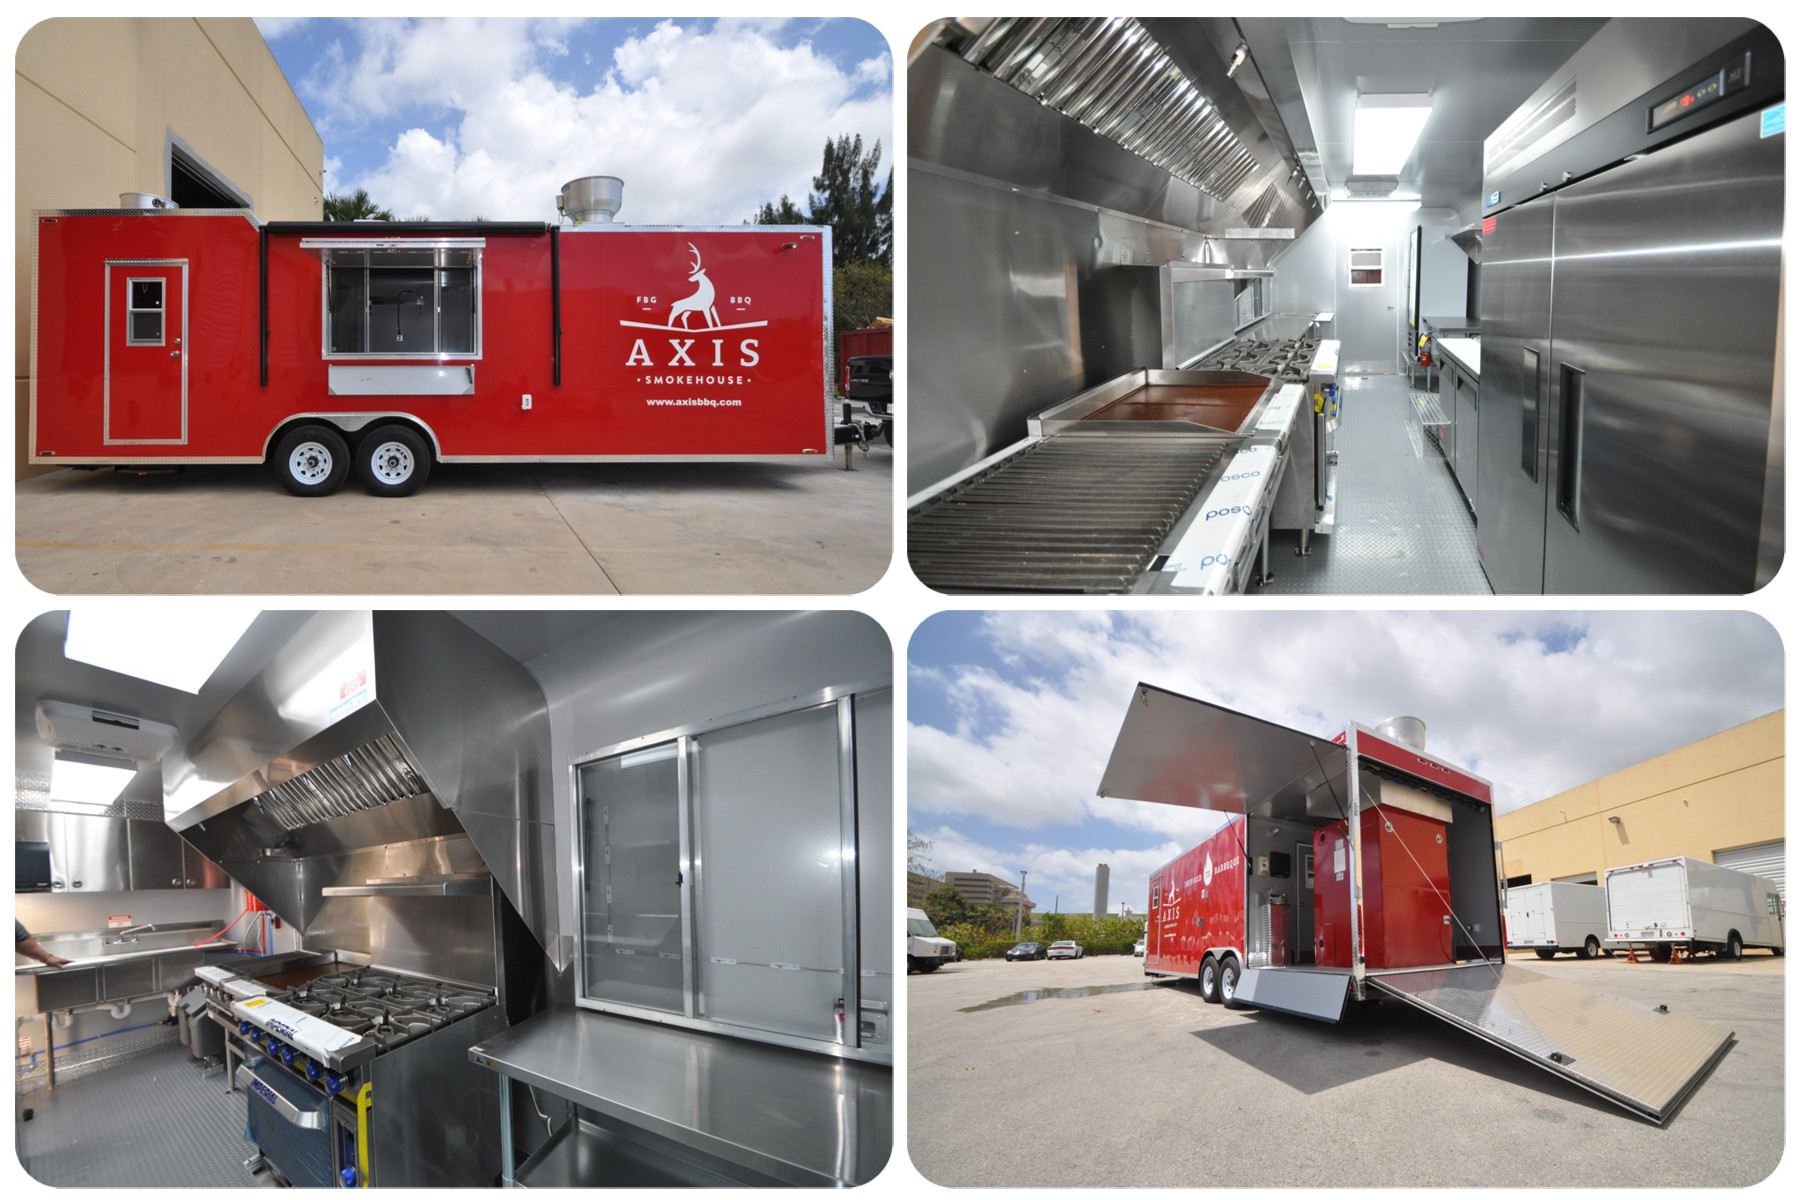 Used Restaurant Equipment for Sale Portland oregon Home Food Trailers Concession Trailers Warehouse Concession